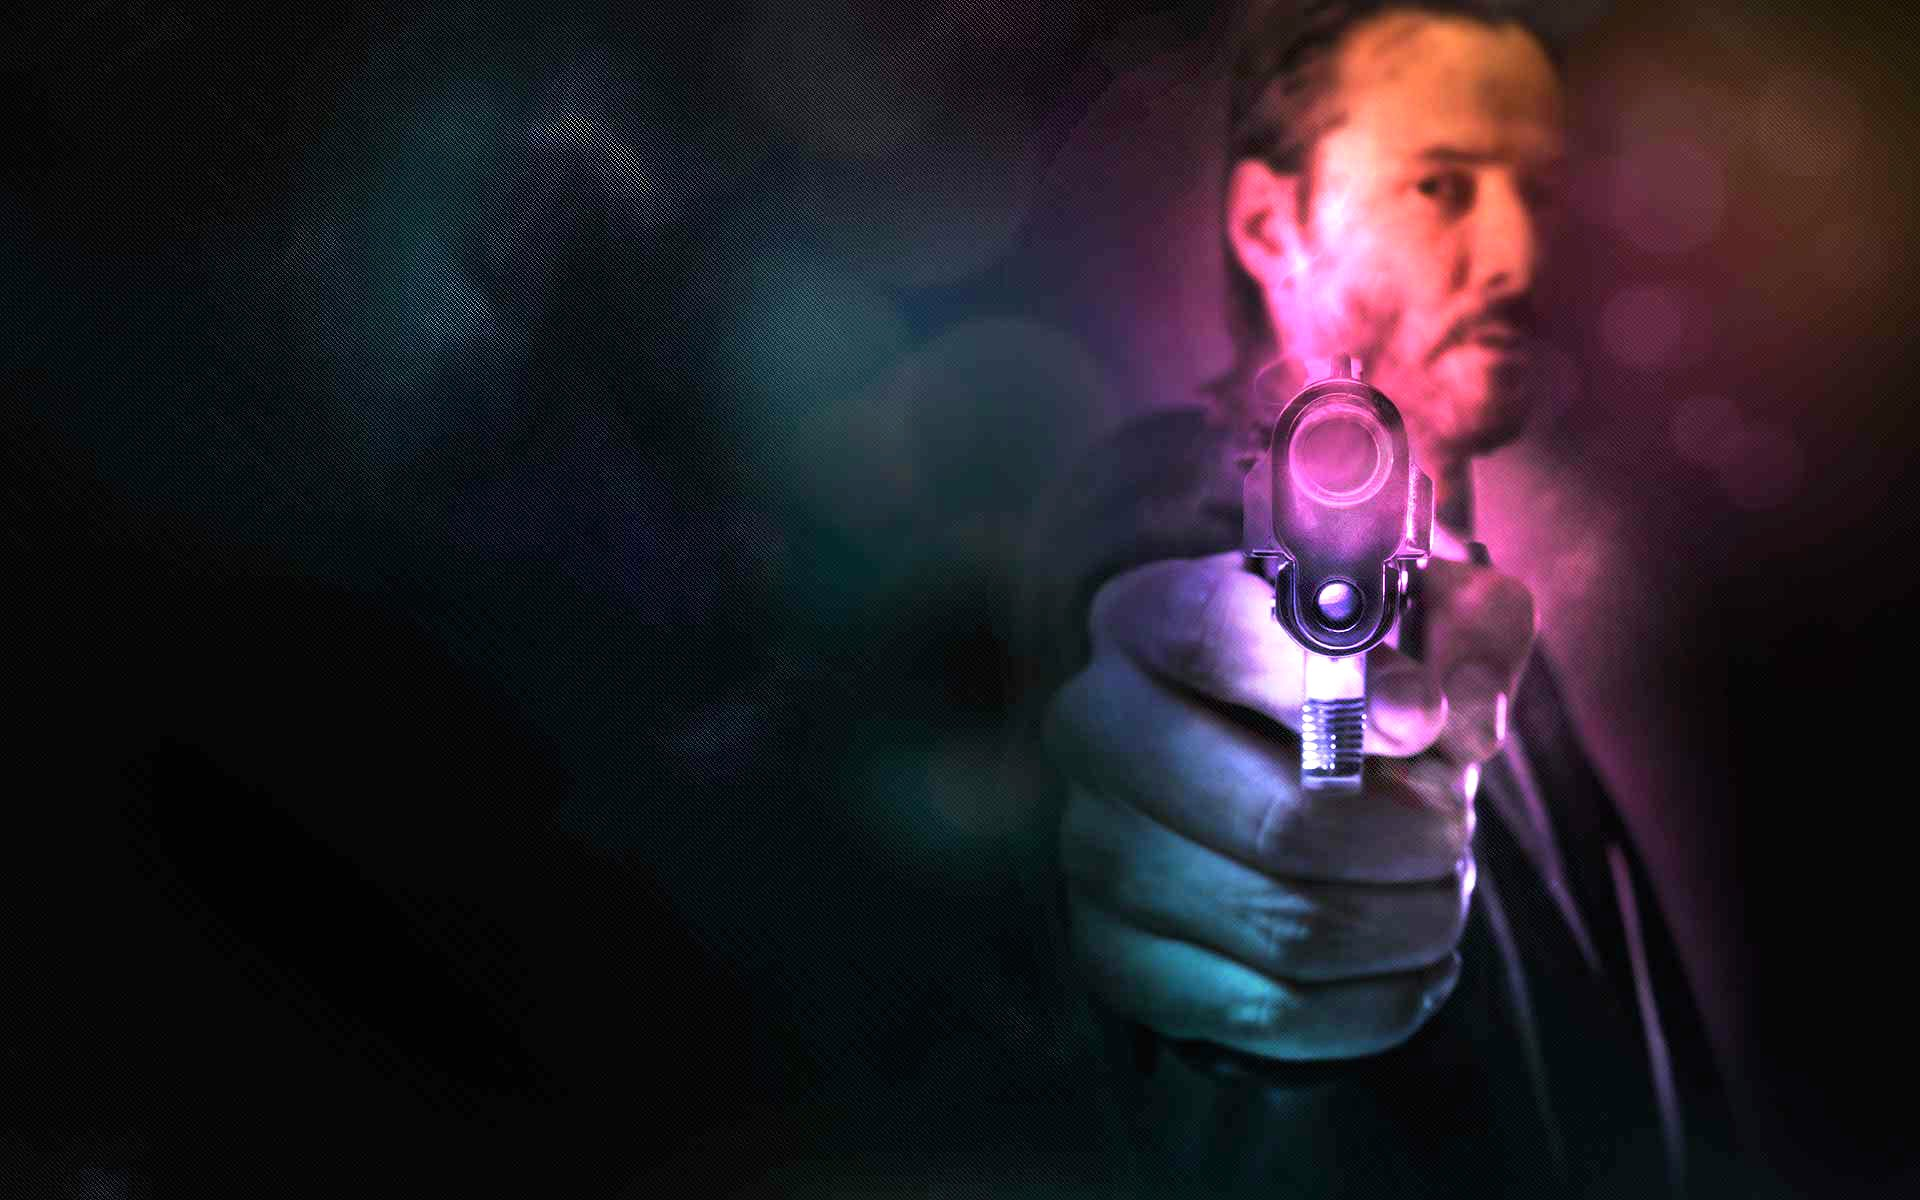 John Wick Background